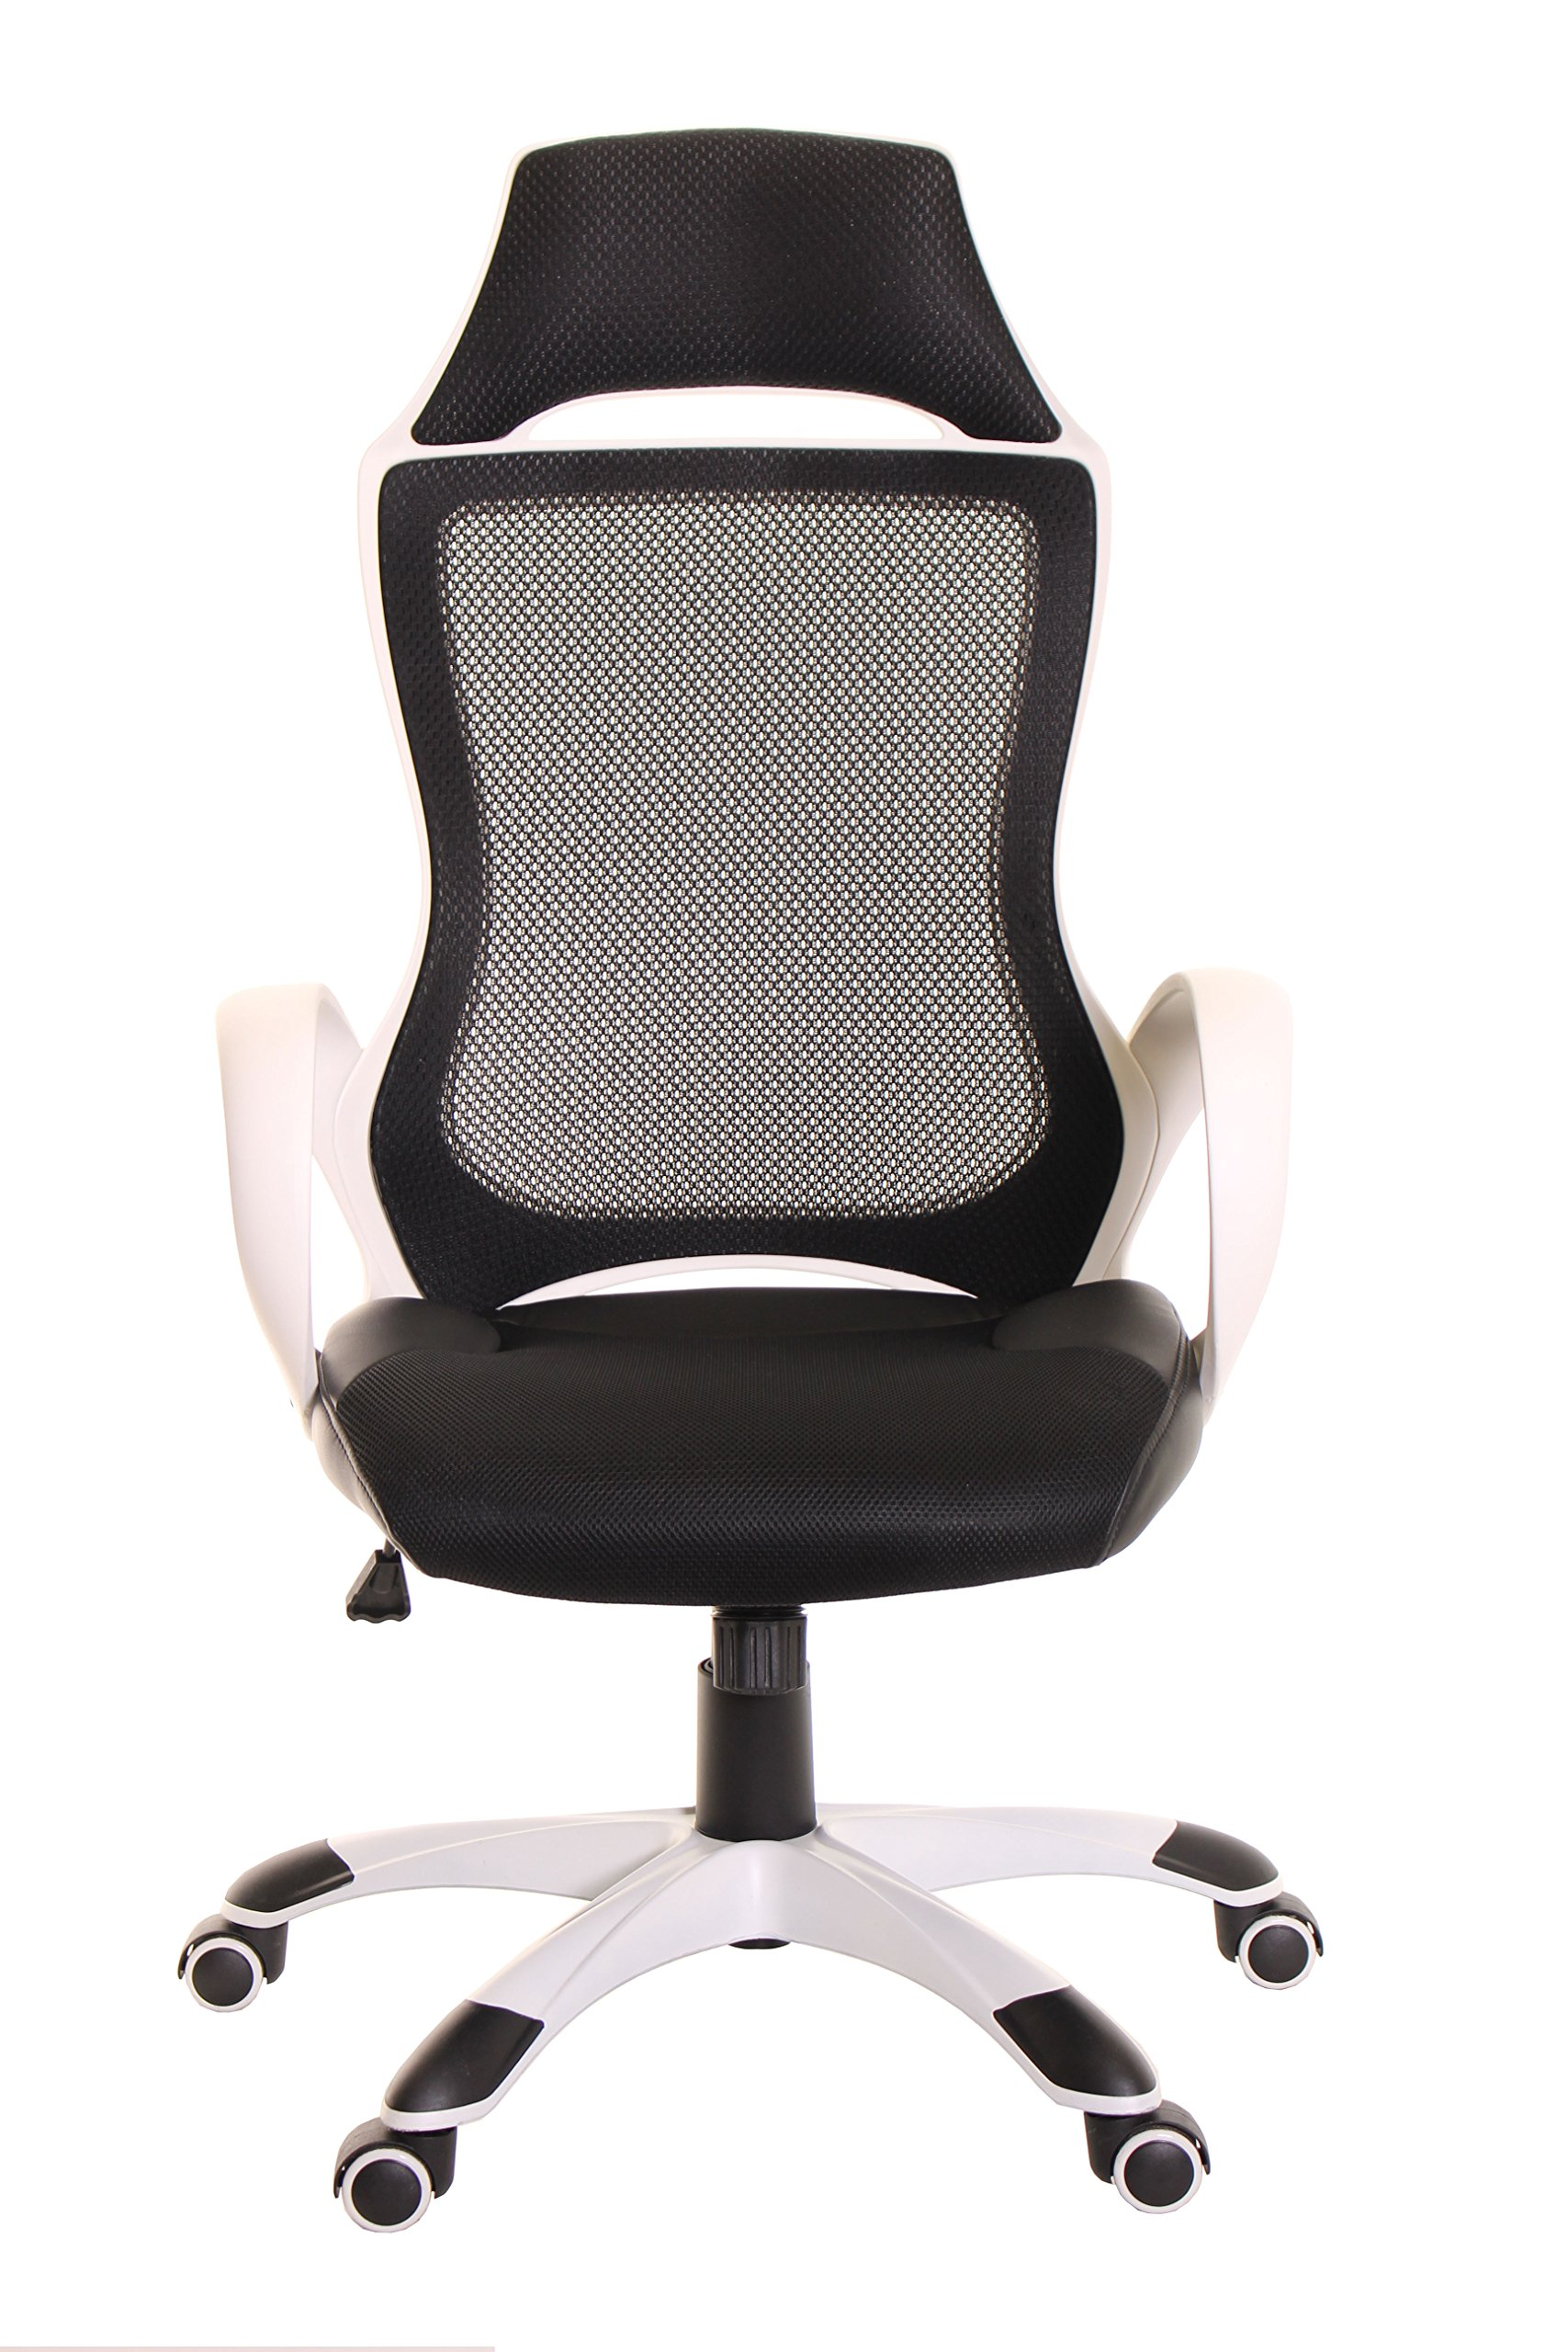 TimeOffice High Back Mesh Executive Chair With Headrest, Ergonomic Computer Black PU Leather Desk Chair, Comfort Office Task Chair & Best Desk Swivel Recliner Chair For Home, Office Chair – Black